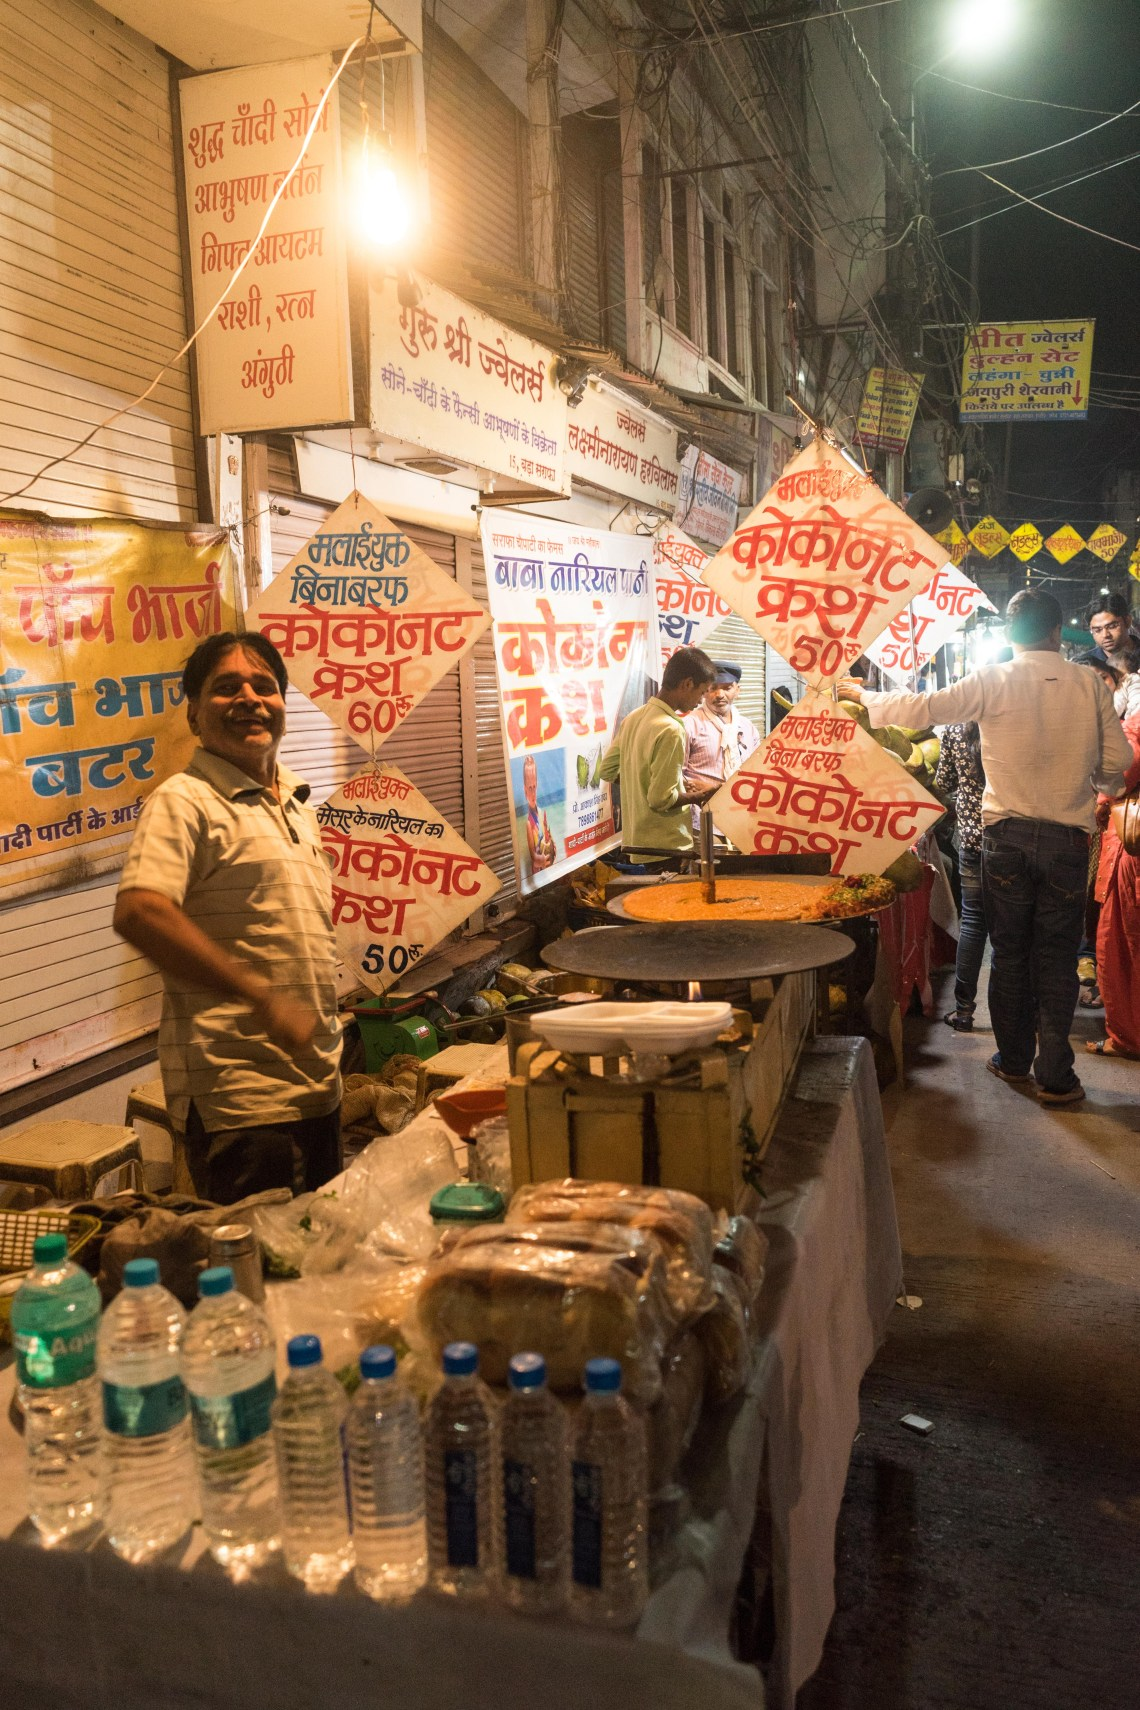 A street vendor selling food and water in Indore